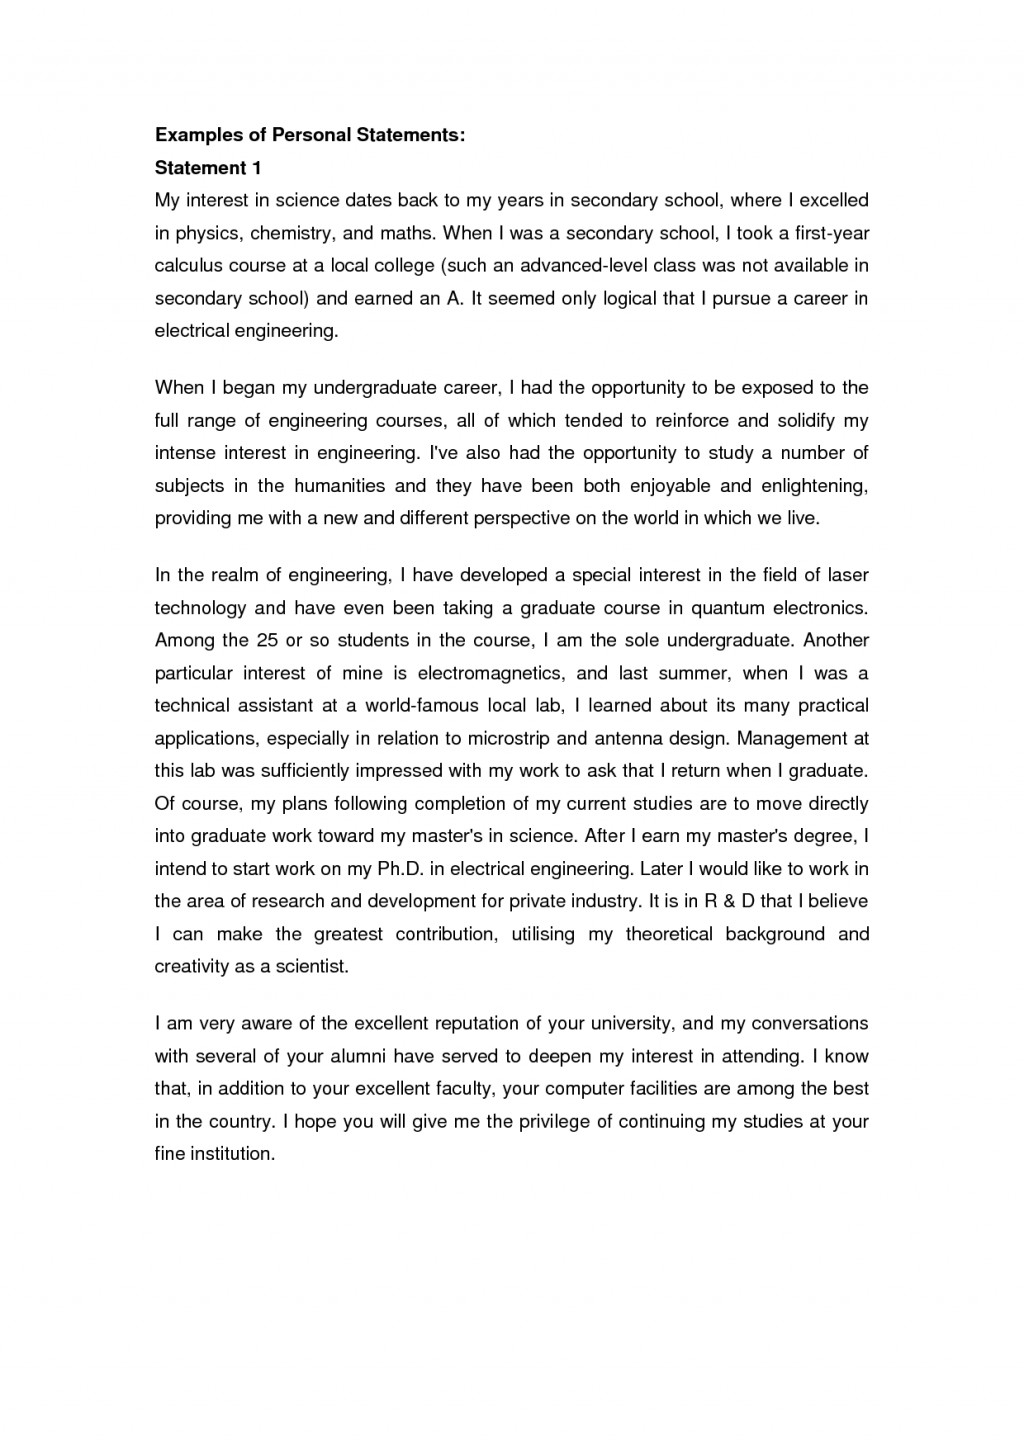 001 College Personal Statement Essays Marvelous Essay Examples Large